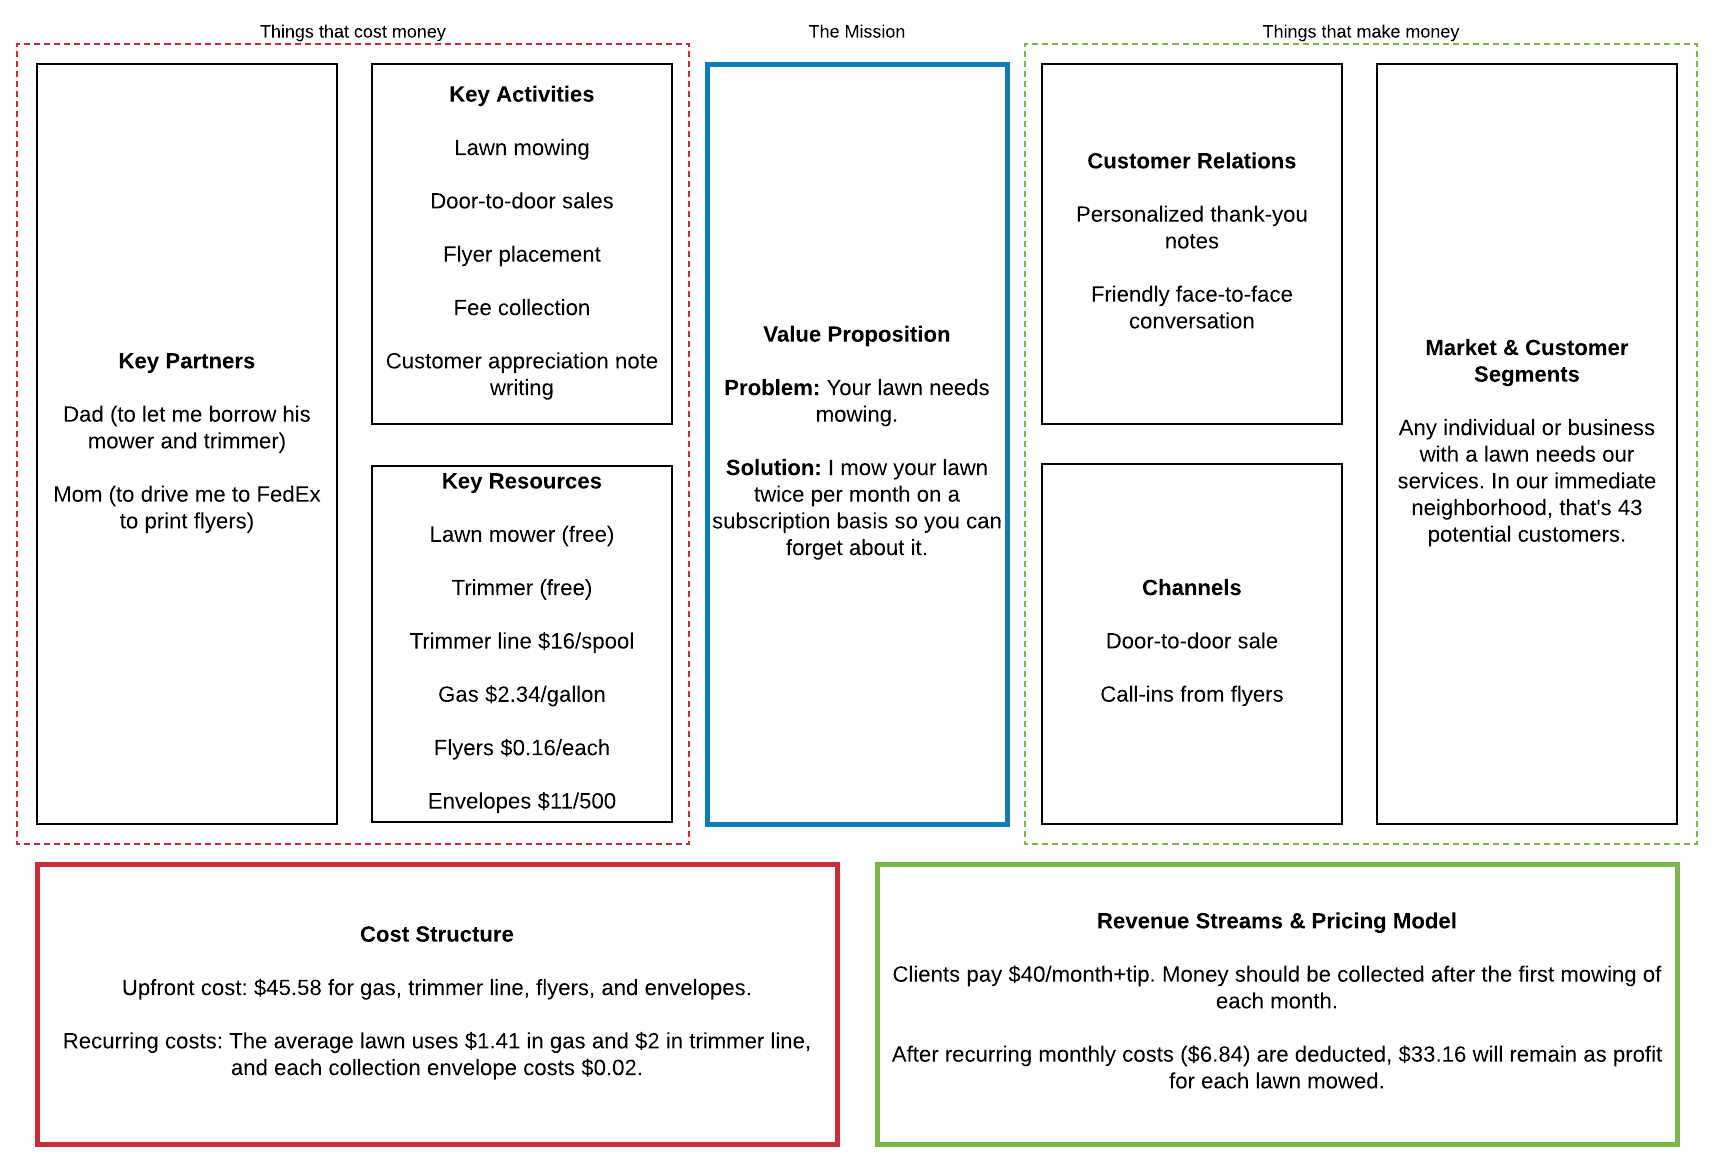 Quick guide to the business model canvas lucidchart blog business model canvas example friedricerecipe Choice Image